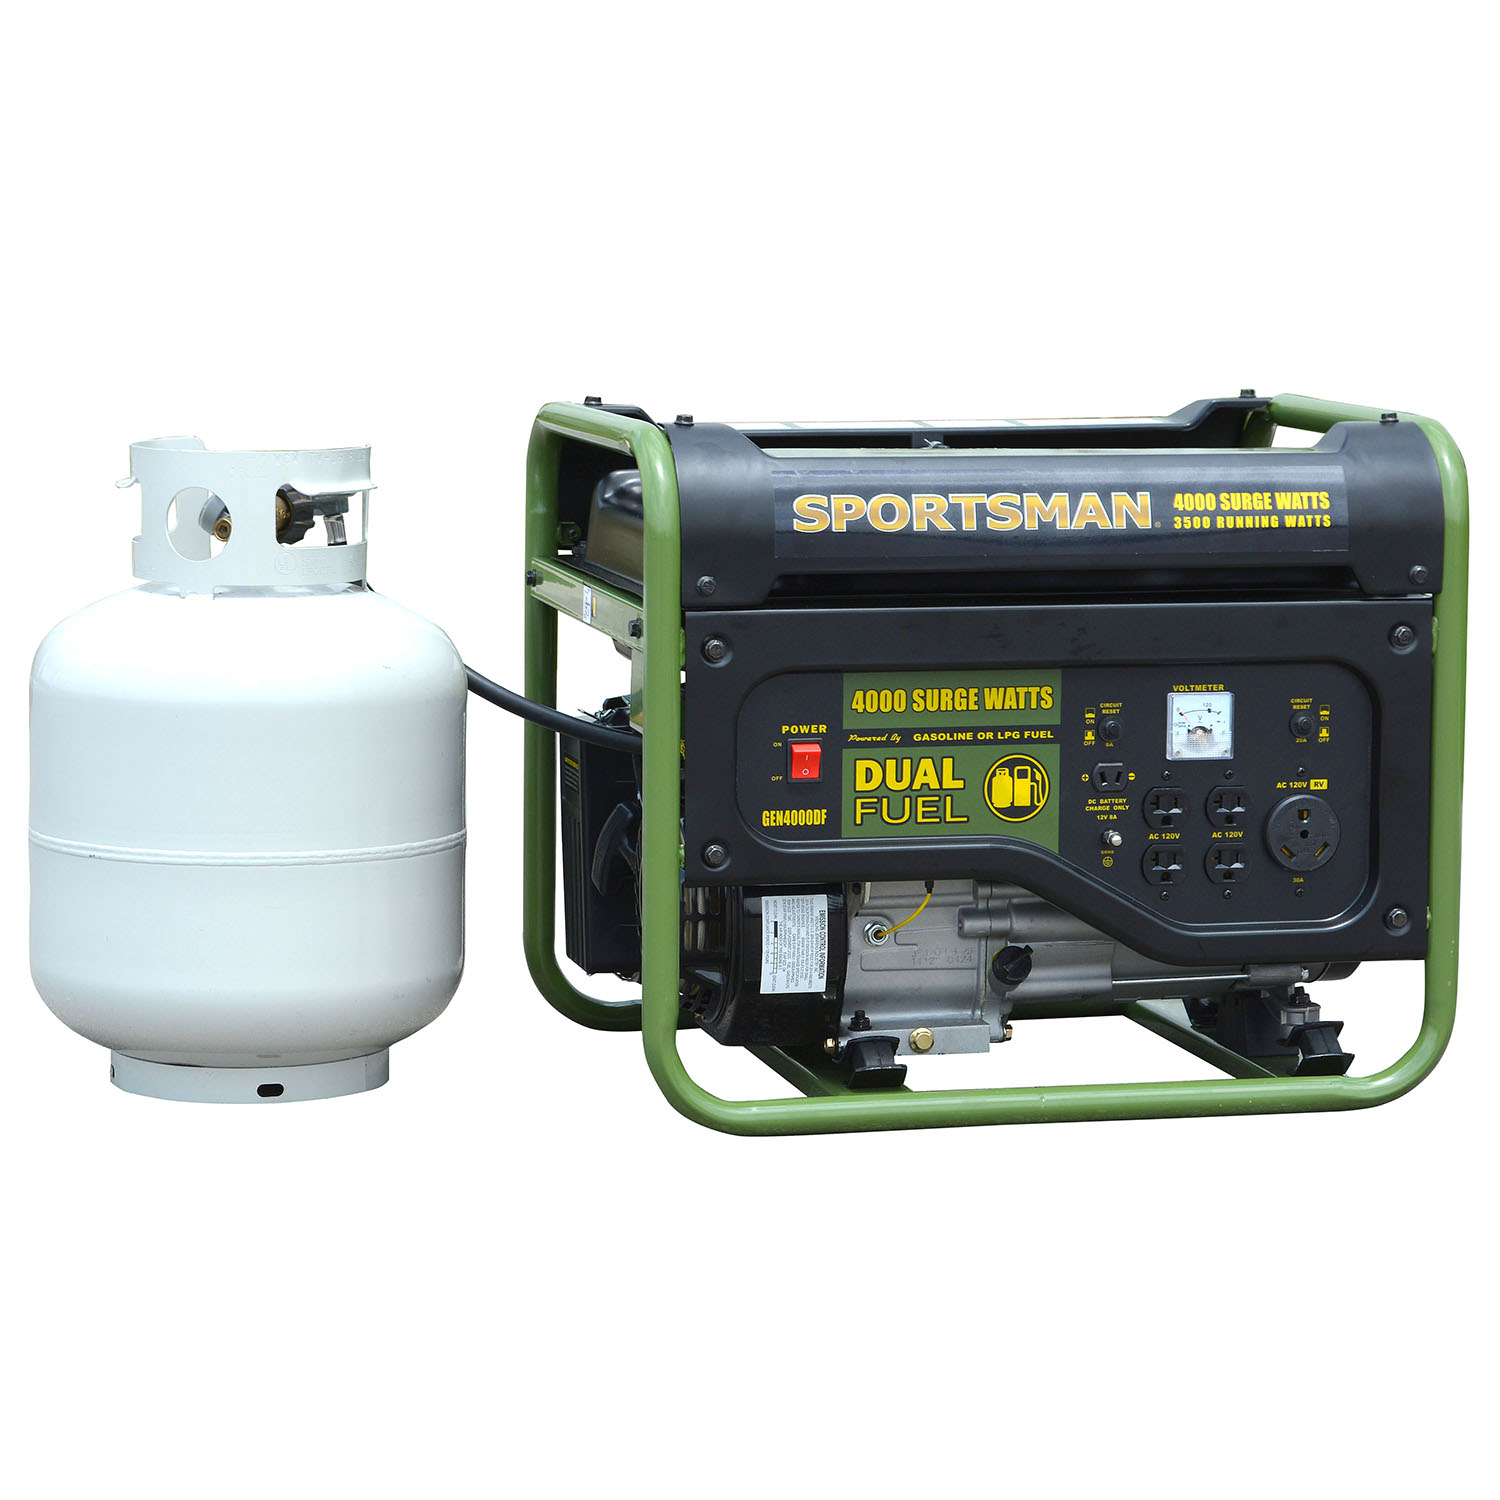 worksheet Generator Wattage Worksheet sportsman 4000 surge watt dual fuel generator 1 2 3